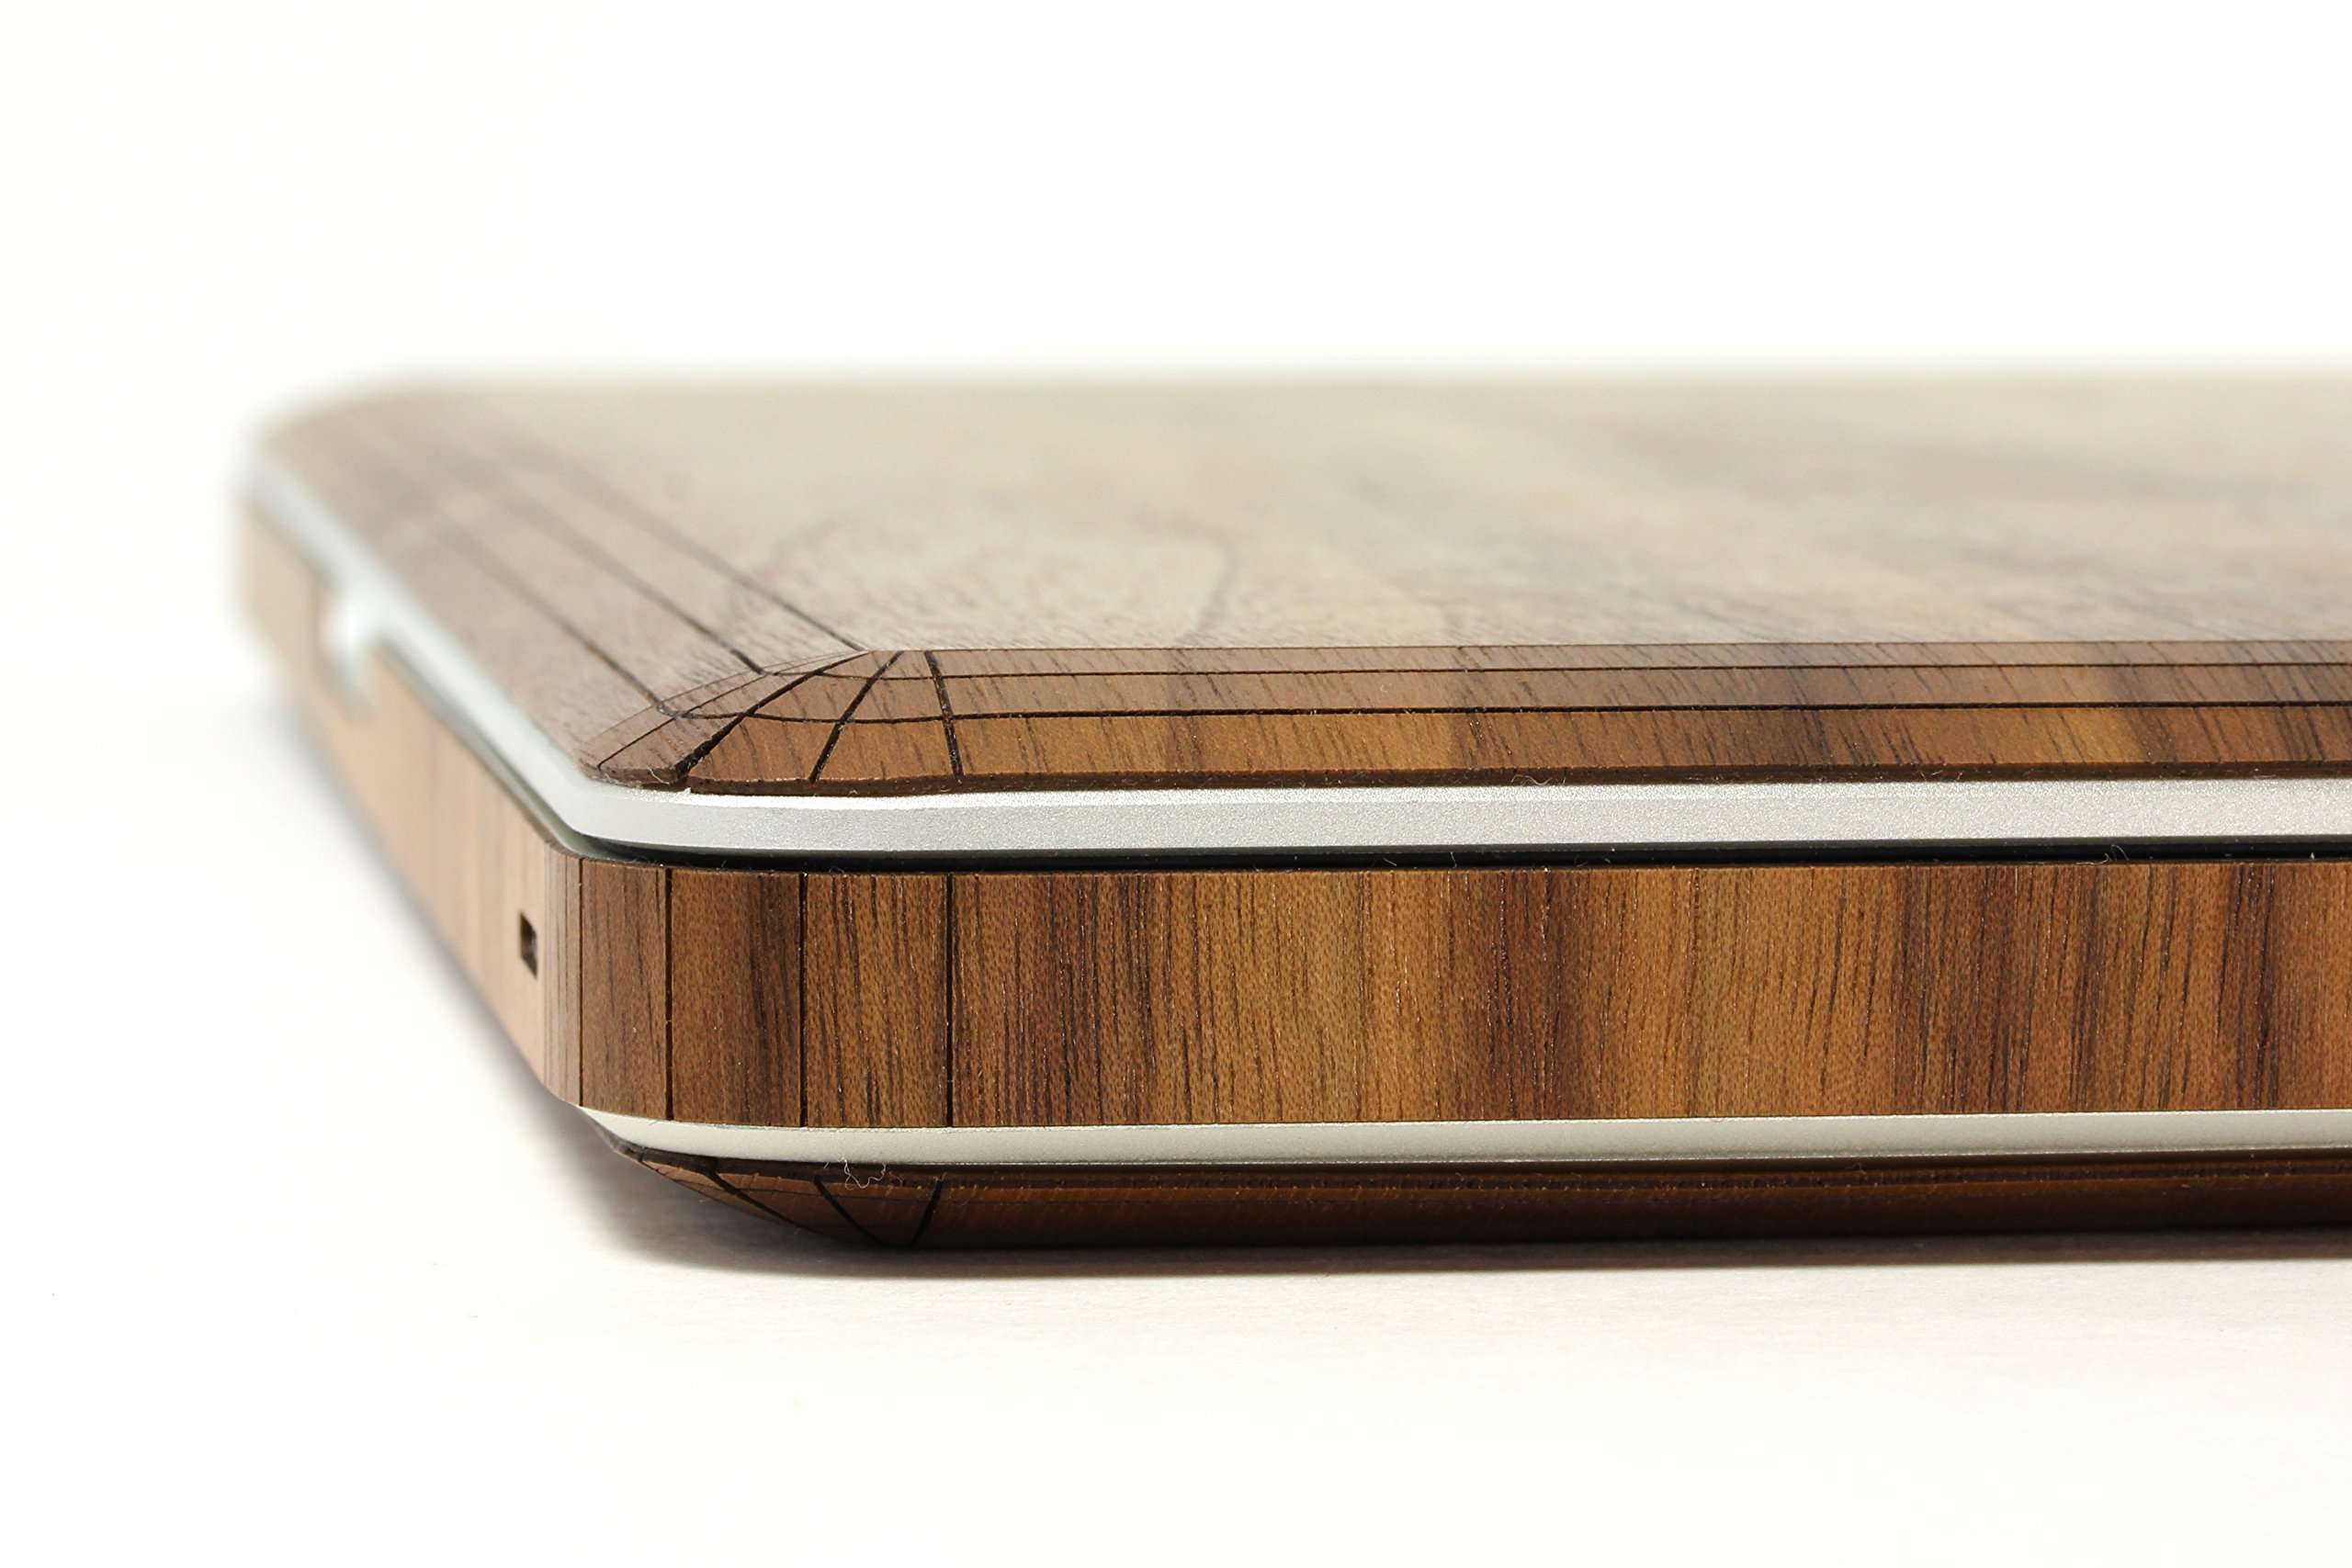 TOAST Real Wood Walnut Cover for MacBook Pro 15-Inch Non-Retina Version (MBPR-15N-PLA-01-COM) by Toast (Image #2)